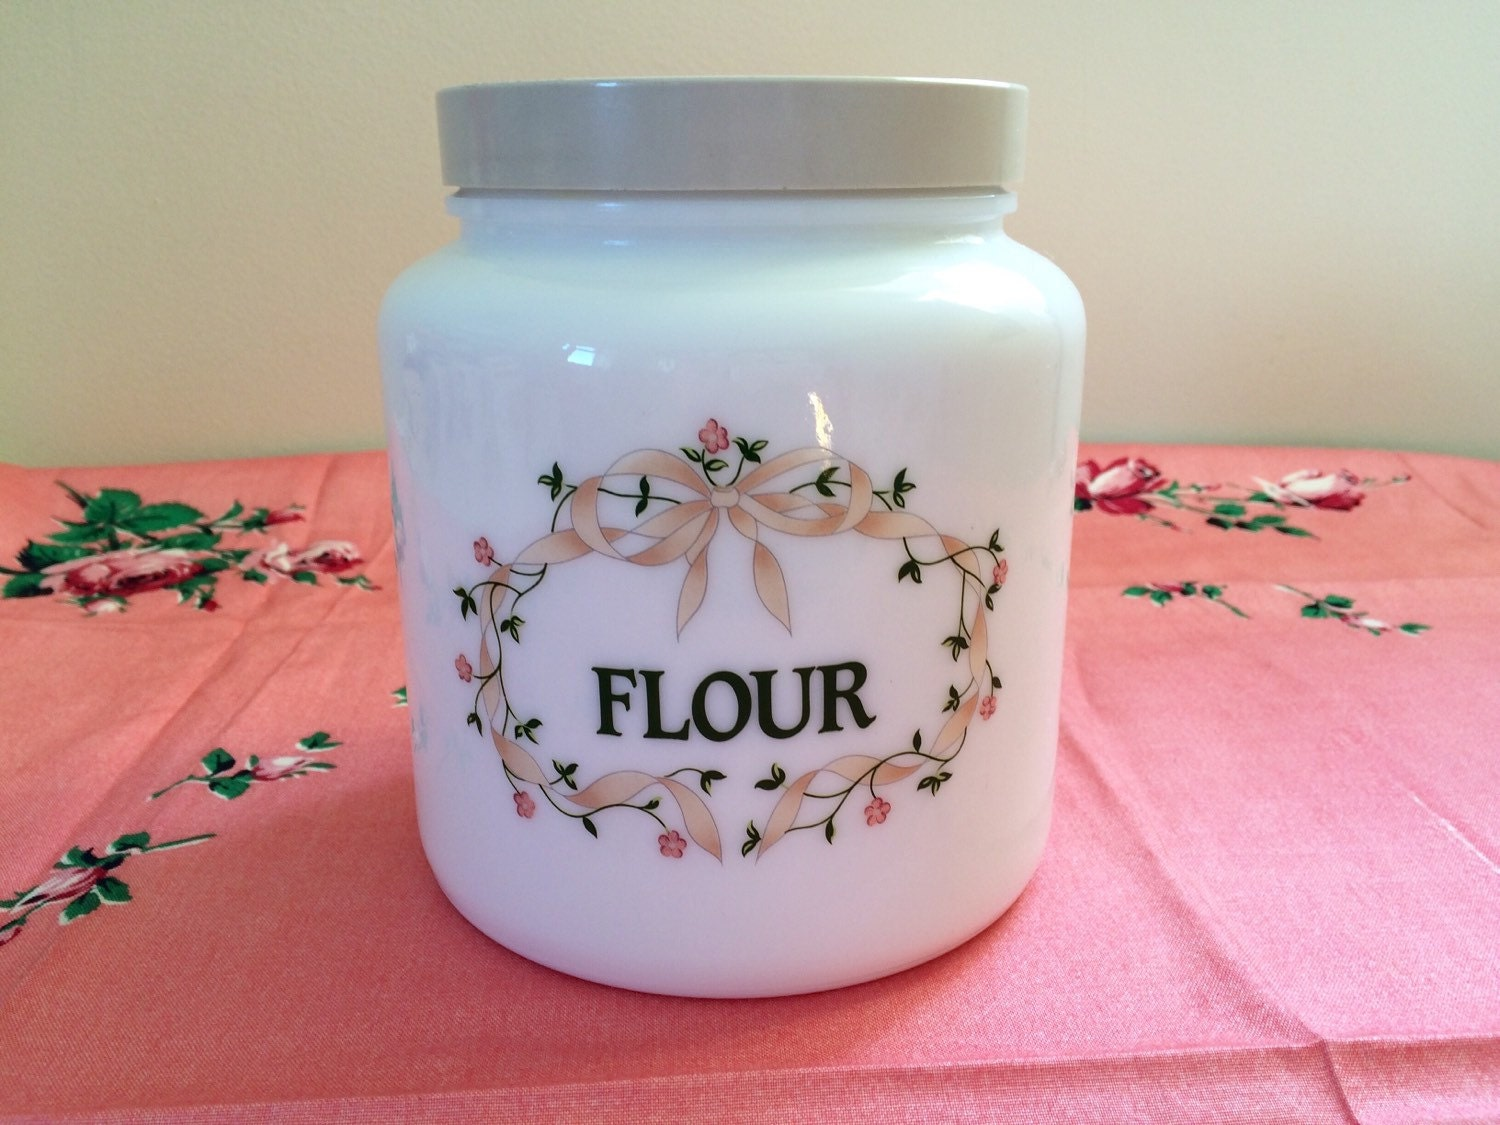 Vintage Milk Glass Flour Canister Jar By Candlelight Johnson